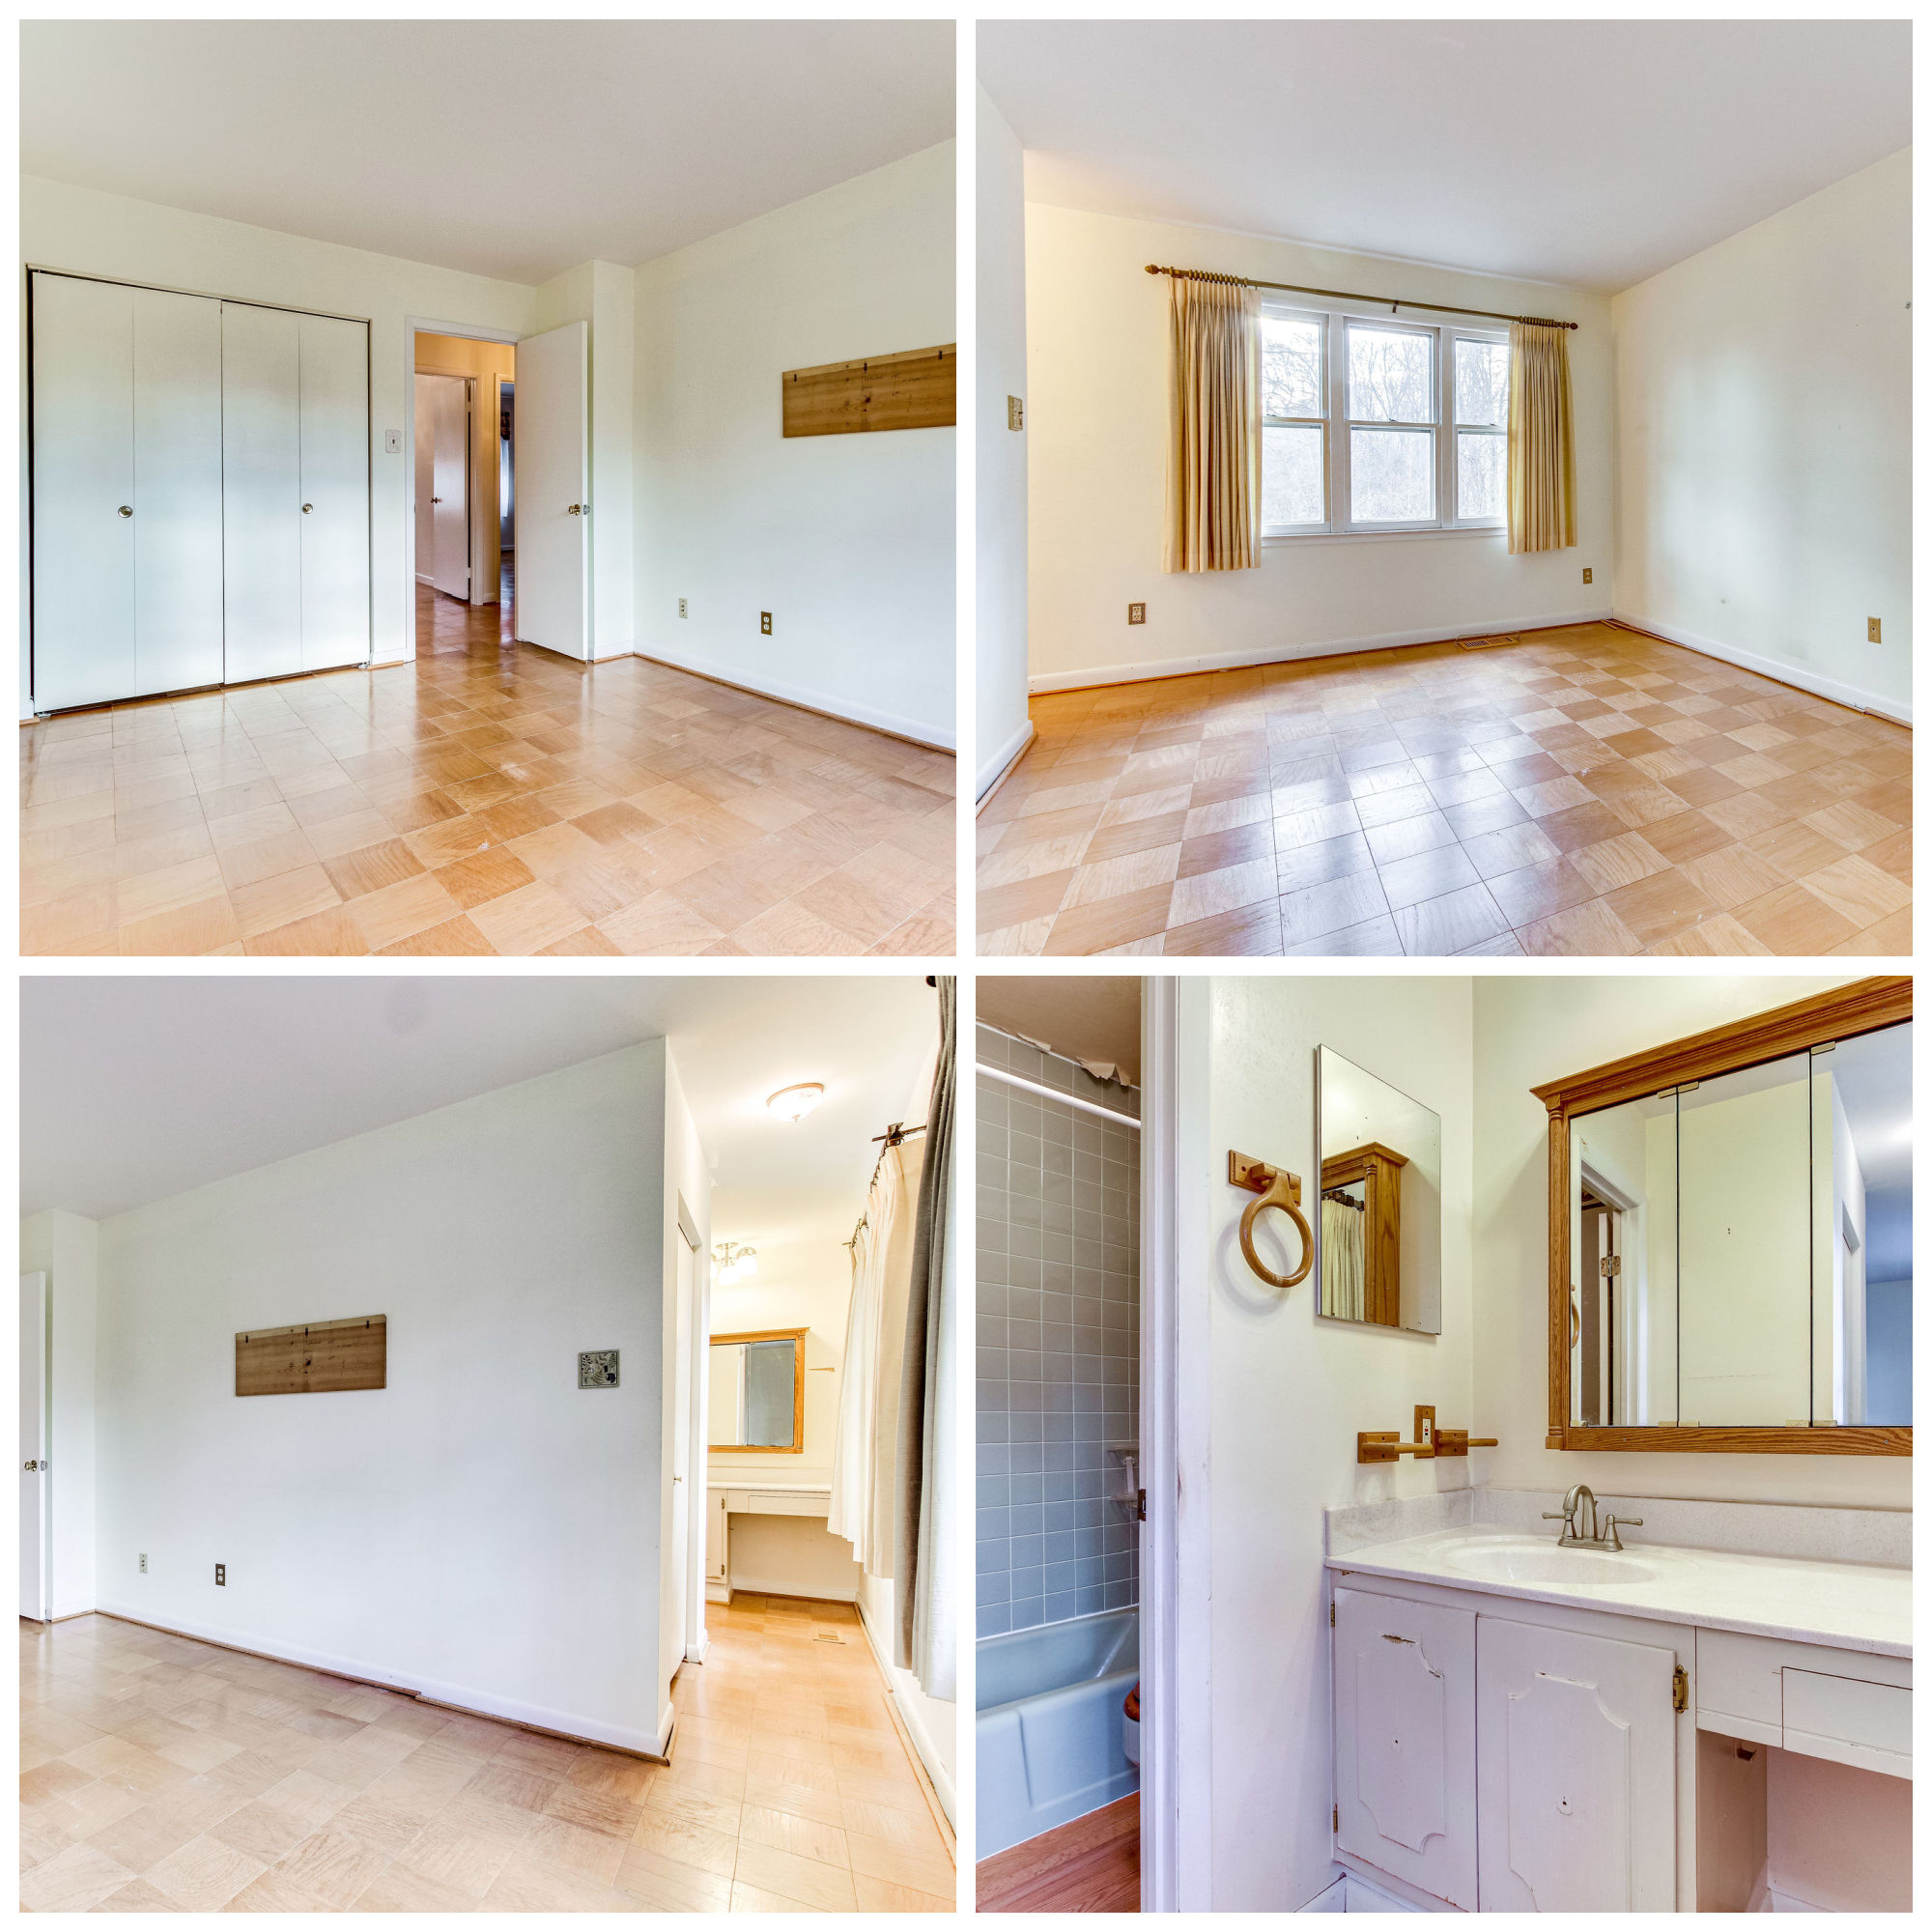 5101 Overlook Park, Annandale- Primary Suite